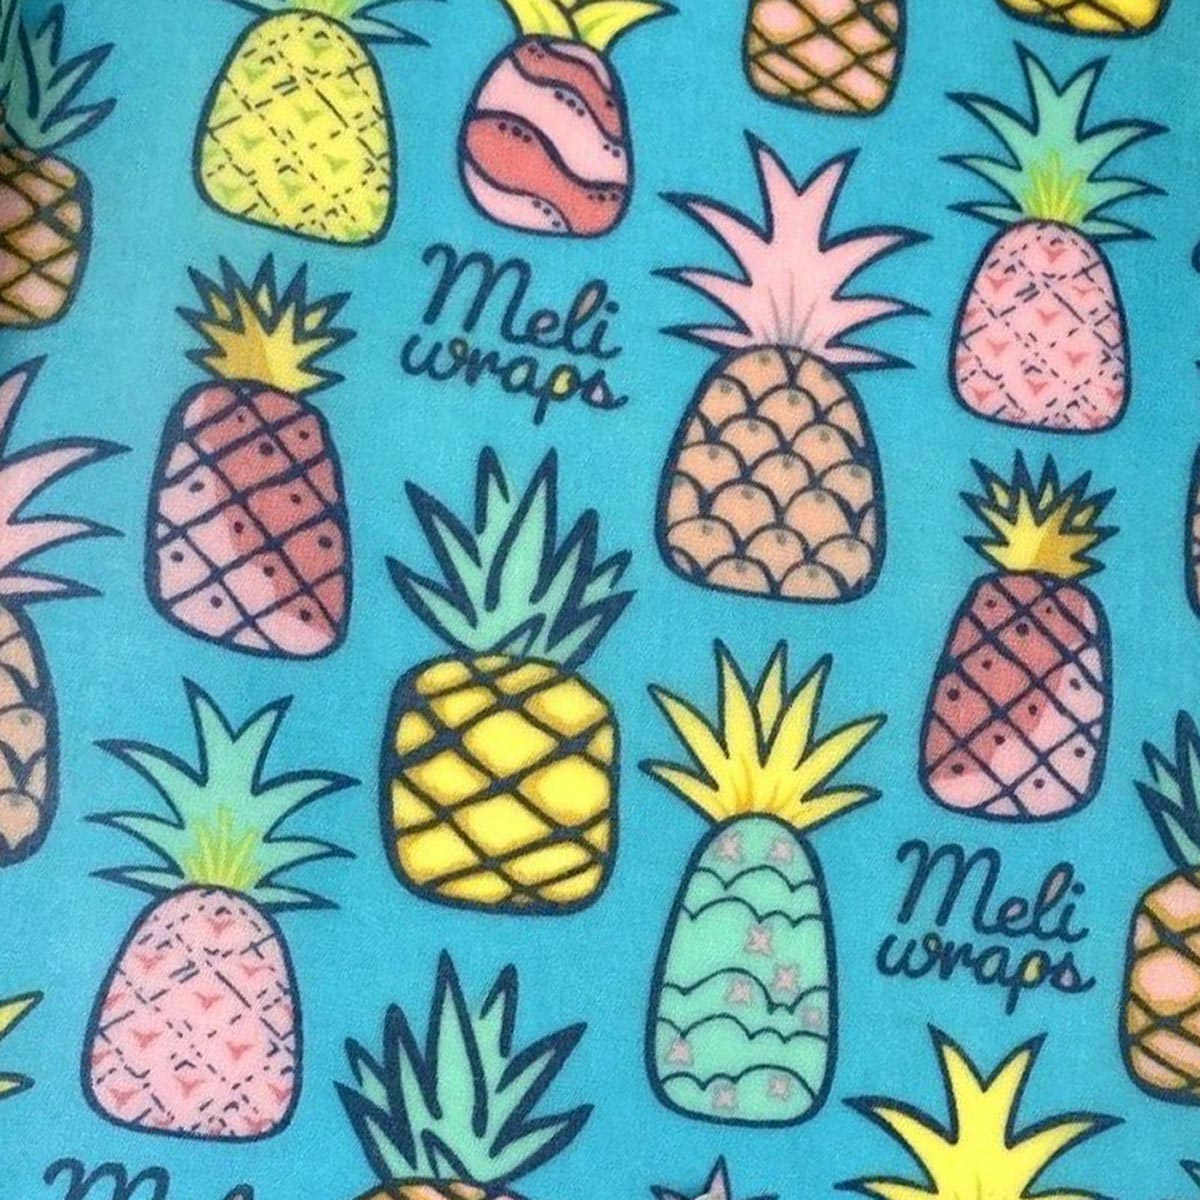 Meli Wraps Bulk Roll (42 in. x 13.5 in.) Reusable Beeswax Food Wrap, Pineapple Print